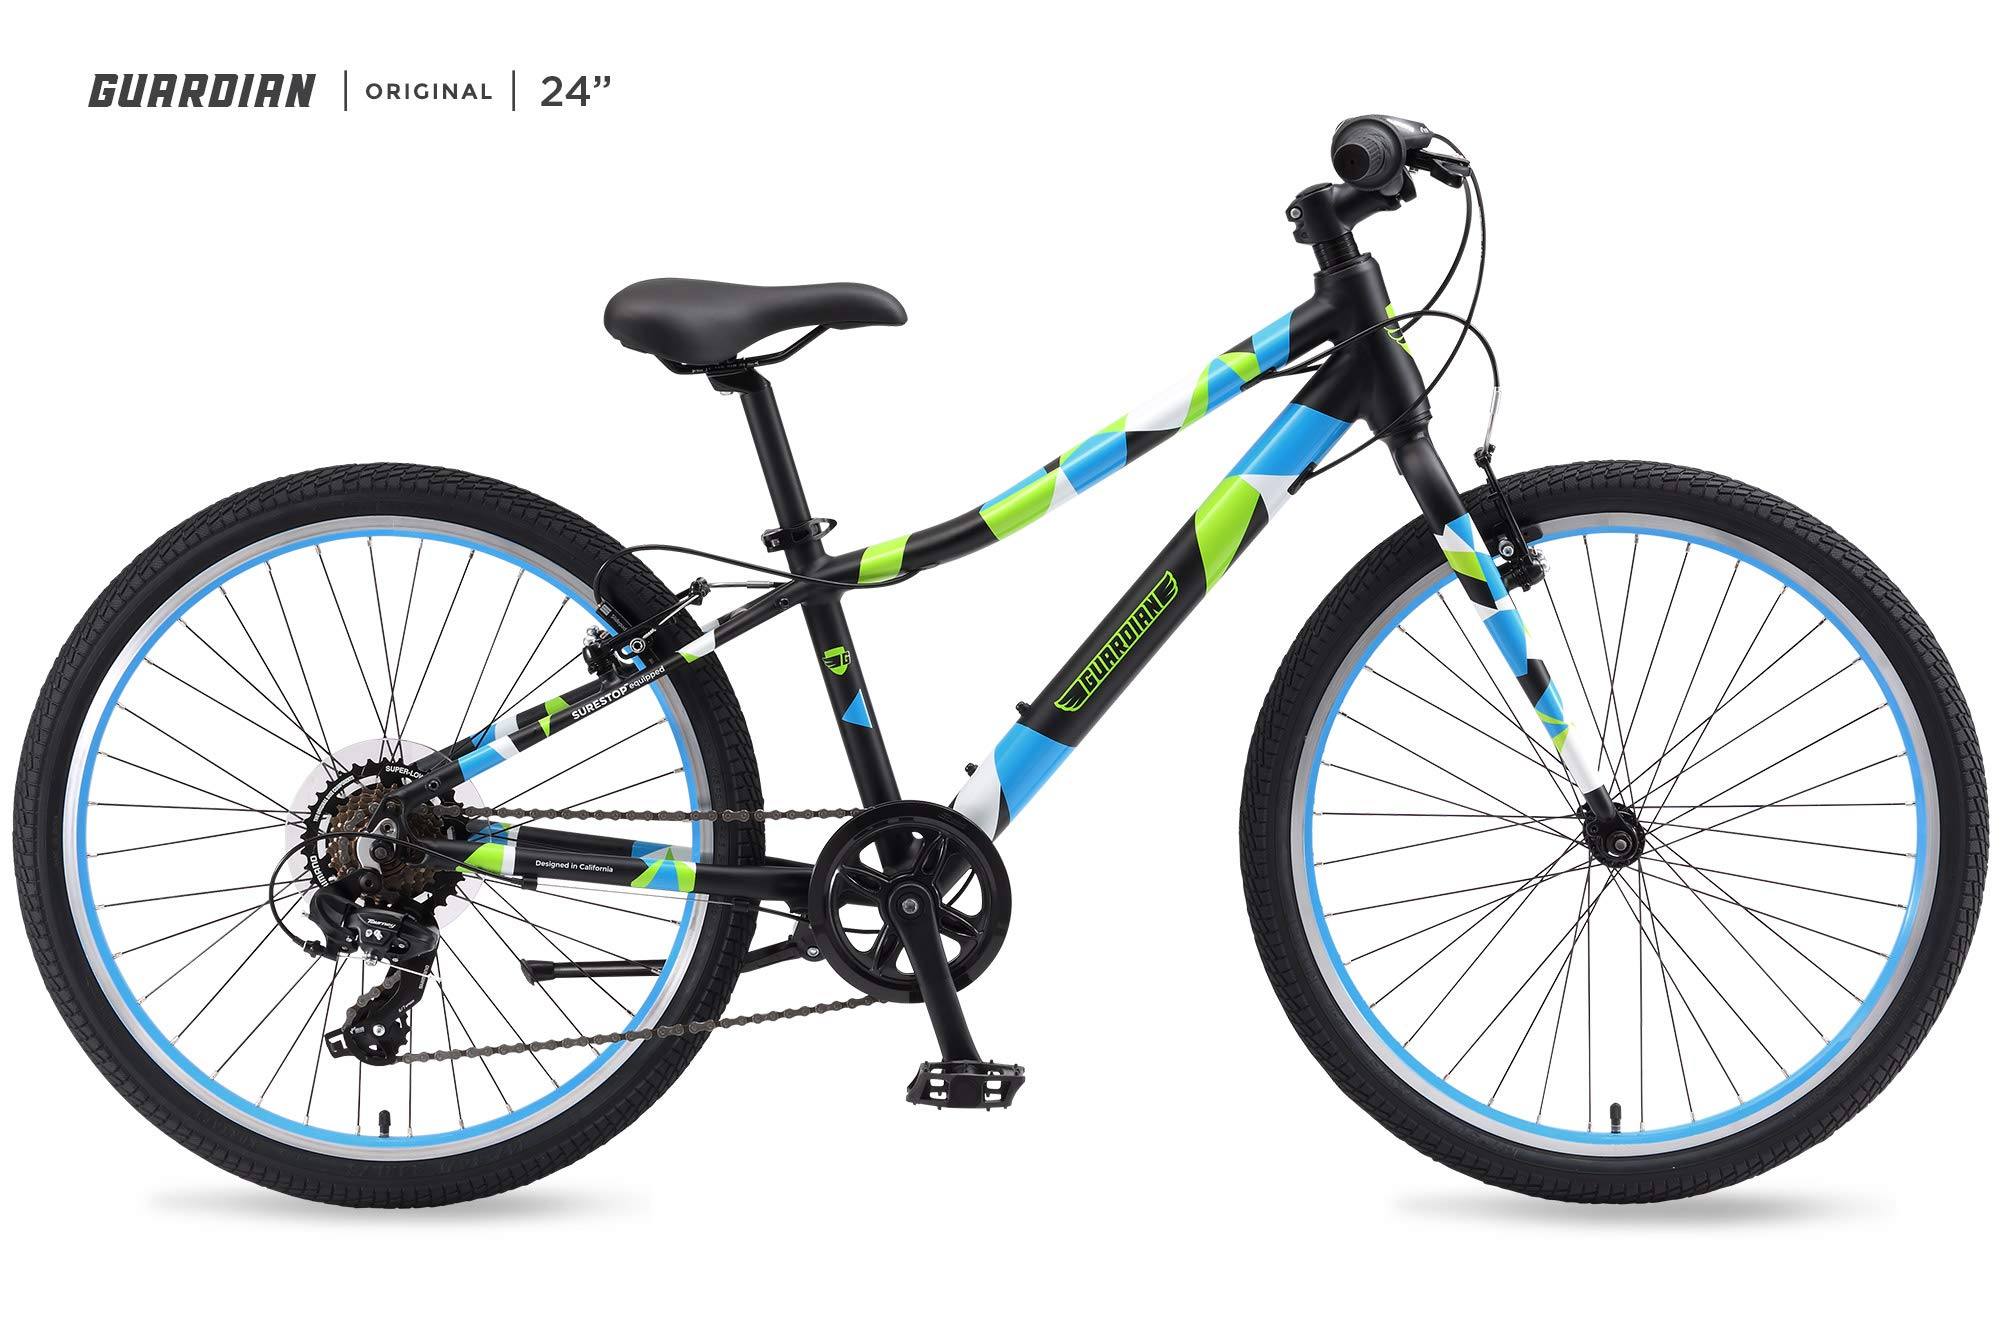 Guardian Lightweight Kids Bike 24 Inch, Safe Patented SureStop Brake System, Kids Mountain Bike, Bike Sizes for Kids 4'2'' - 5'1'', Boys Bikes and Girls Bikes (AS SEEN ON Shark Tank) by Guardian Bikes (Image #1)